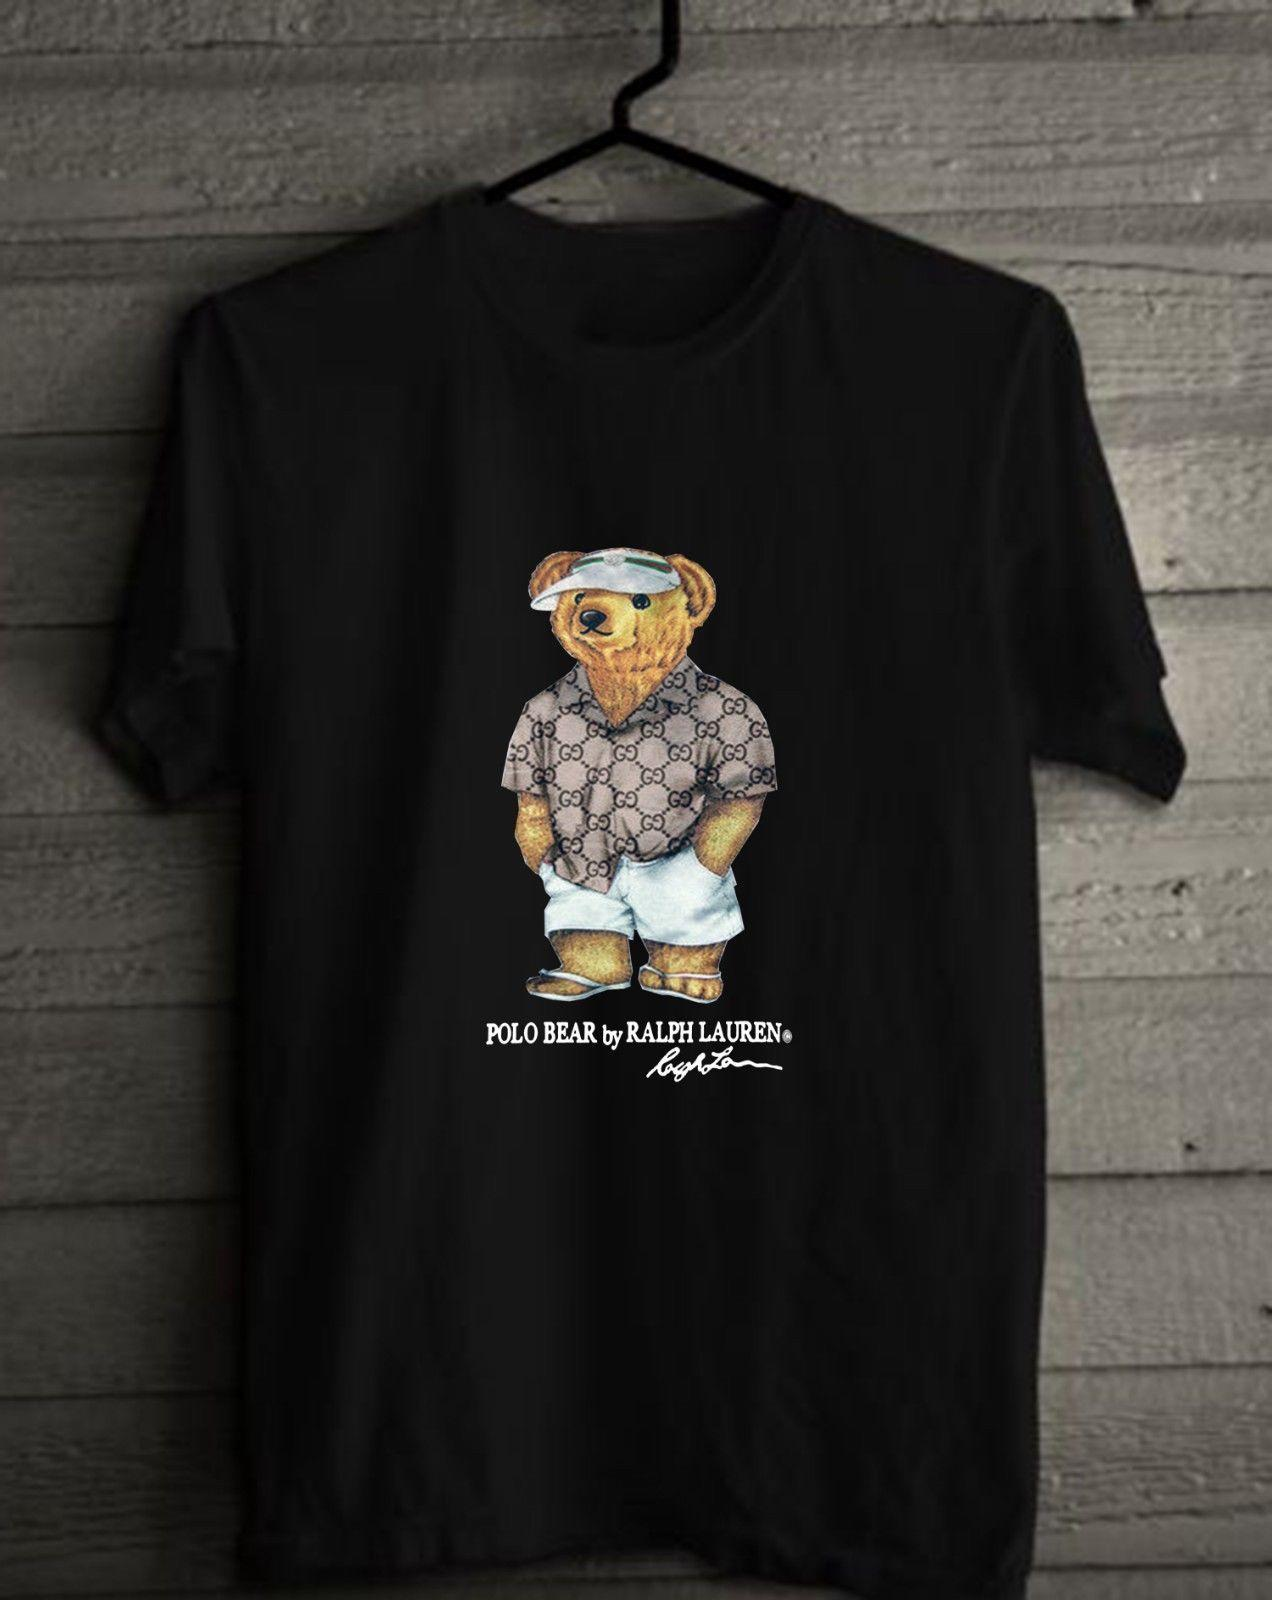 67a7edebc4d894 Men's Clothing Shirts Vintage RARE Polo Lauren Sport Bear T-Shirt SIZE  S-2XL REPRINT